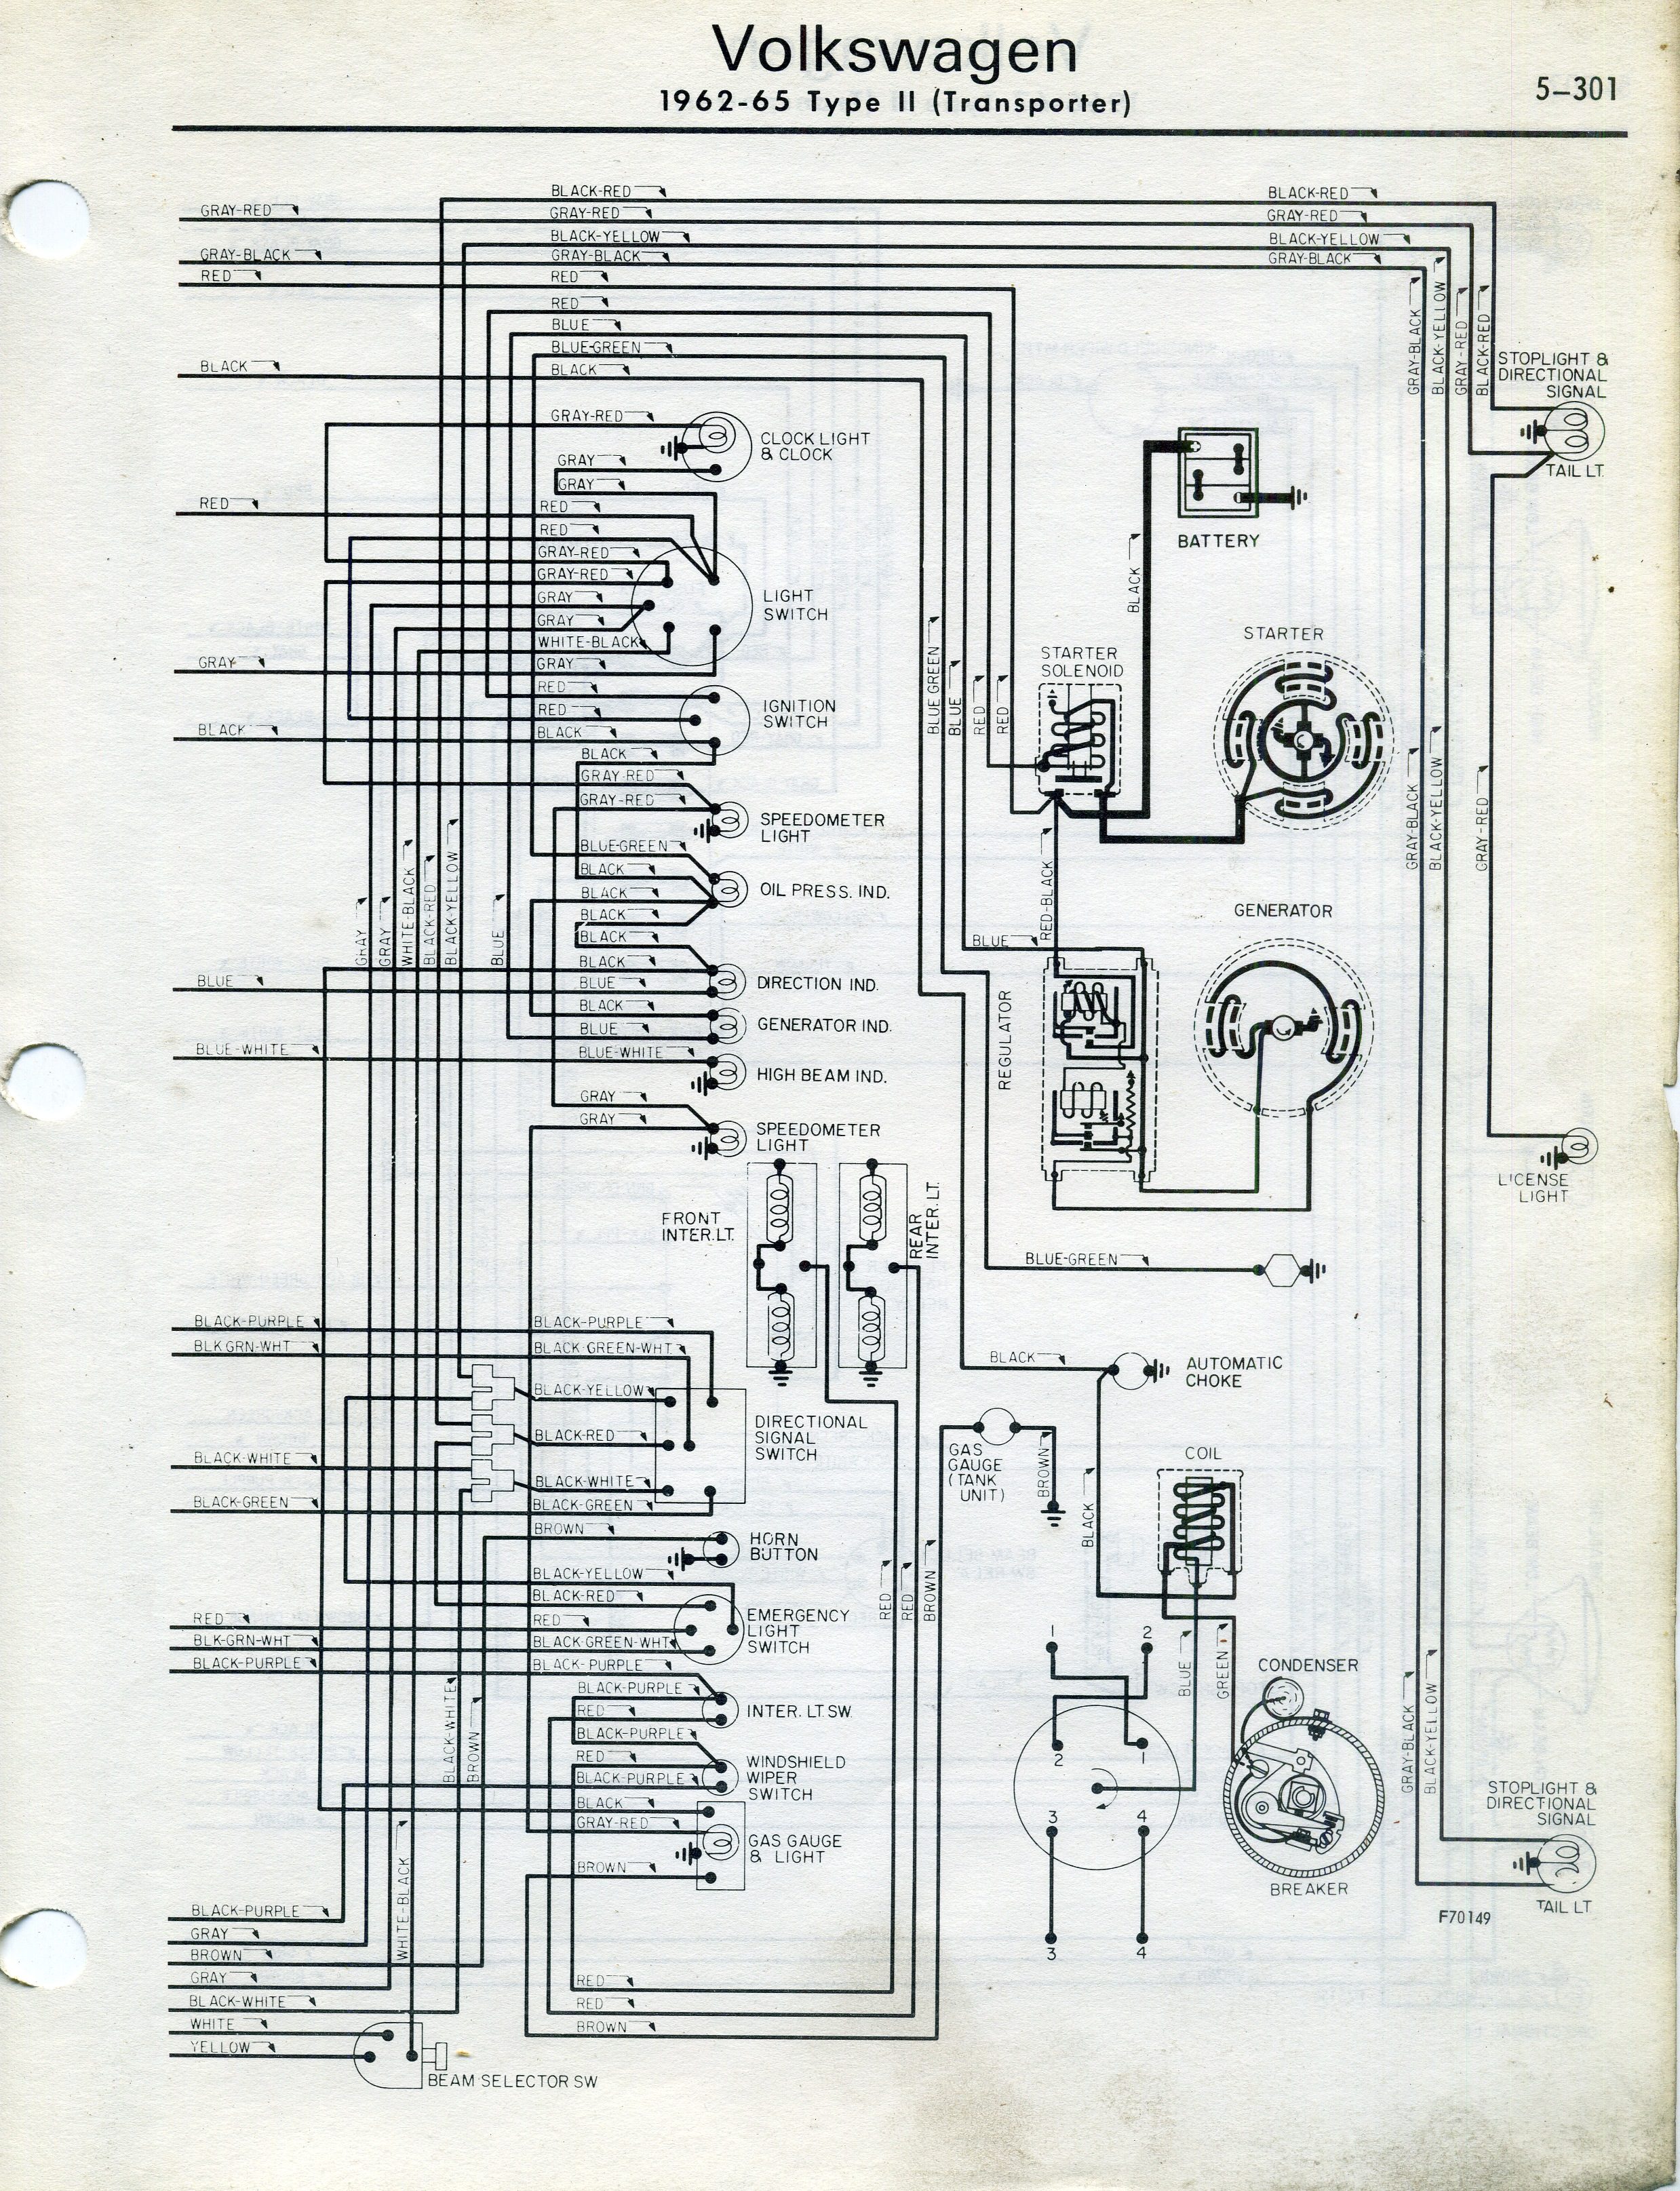 TheSamba.com :: Type 2 Wiring Diagrams on 1973 nova wiring diagram, 1965 nova wiring diagram, 1971 nova wiring diagram, 1970 nova wiring diagram, 77 nova wiring diagram, 1966 nova wiring diagram, 1968 nova wiring diagram, 71 nova wiring diagram, 1969 nova wiring diagram, 1963 nova wiring diagram, 1974 nova wiring diagram, 68 nova wiring diagram, 70 nova wiring diagram, 67 nova dash wiring diagram, 1975 nova wiring diagram, 1986 chevy nova wiring diagram, 1972 nova wiring diagram, 72 nova wiring diagram, 1967 nova wiring diagram, 1964 nova wiring diagram,